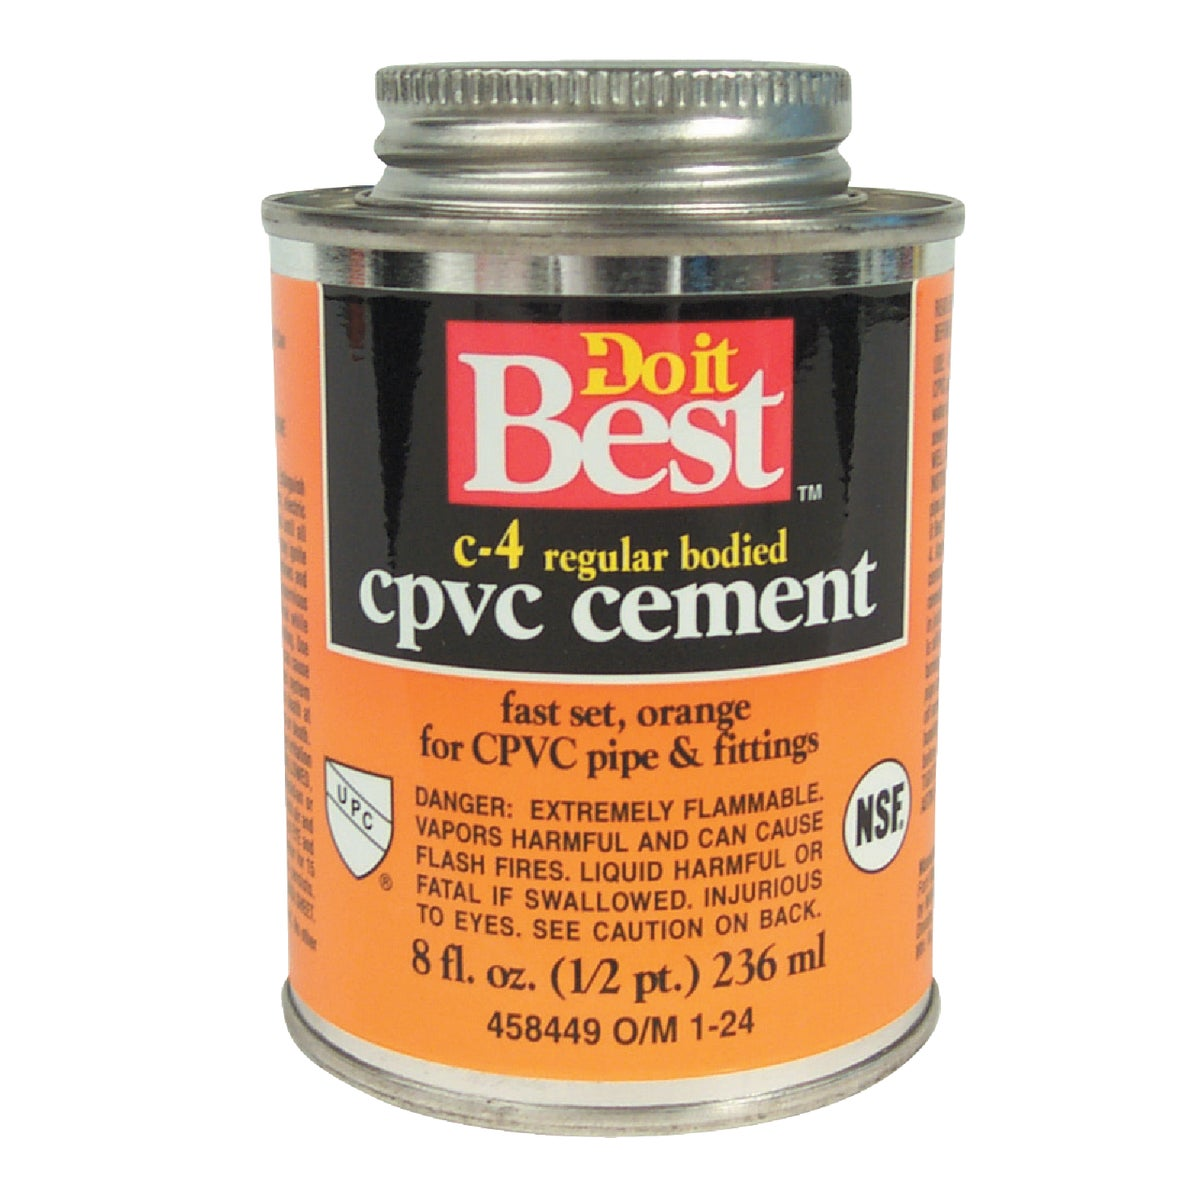 1/2PINT CPVC CEMENT - 018714 by Wm H Harvey Co